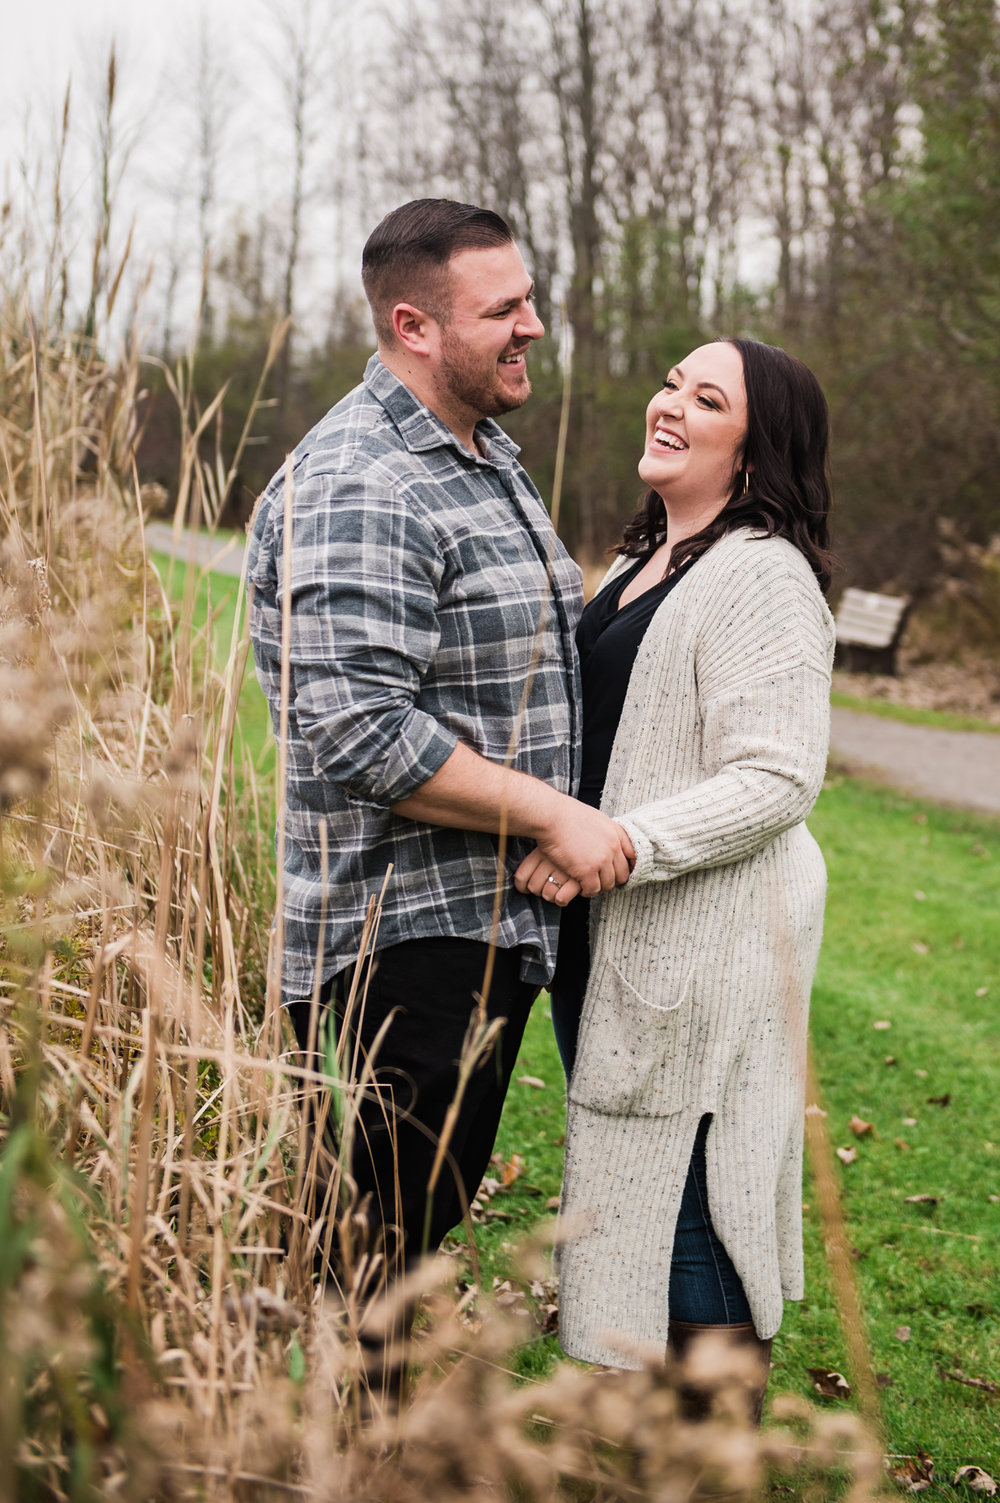 Tinker_Nature_Park_Rochester_Engagement_Session_JILL_STUDIO_Rochester_NY_Photographer_DSC_0507.jpg